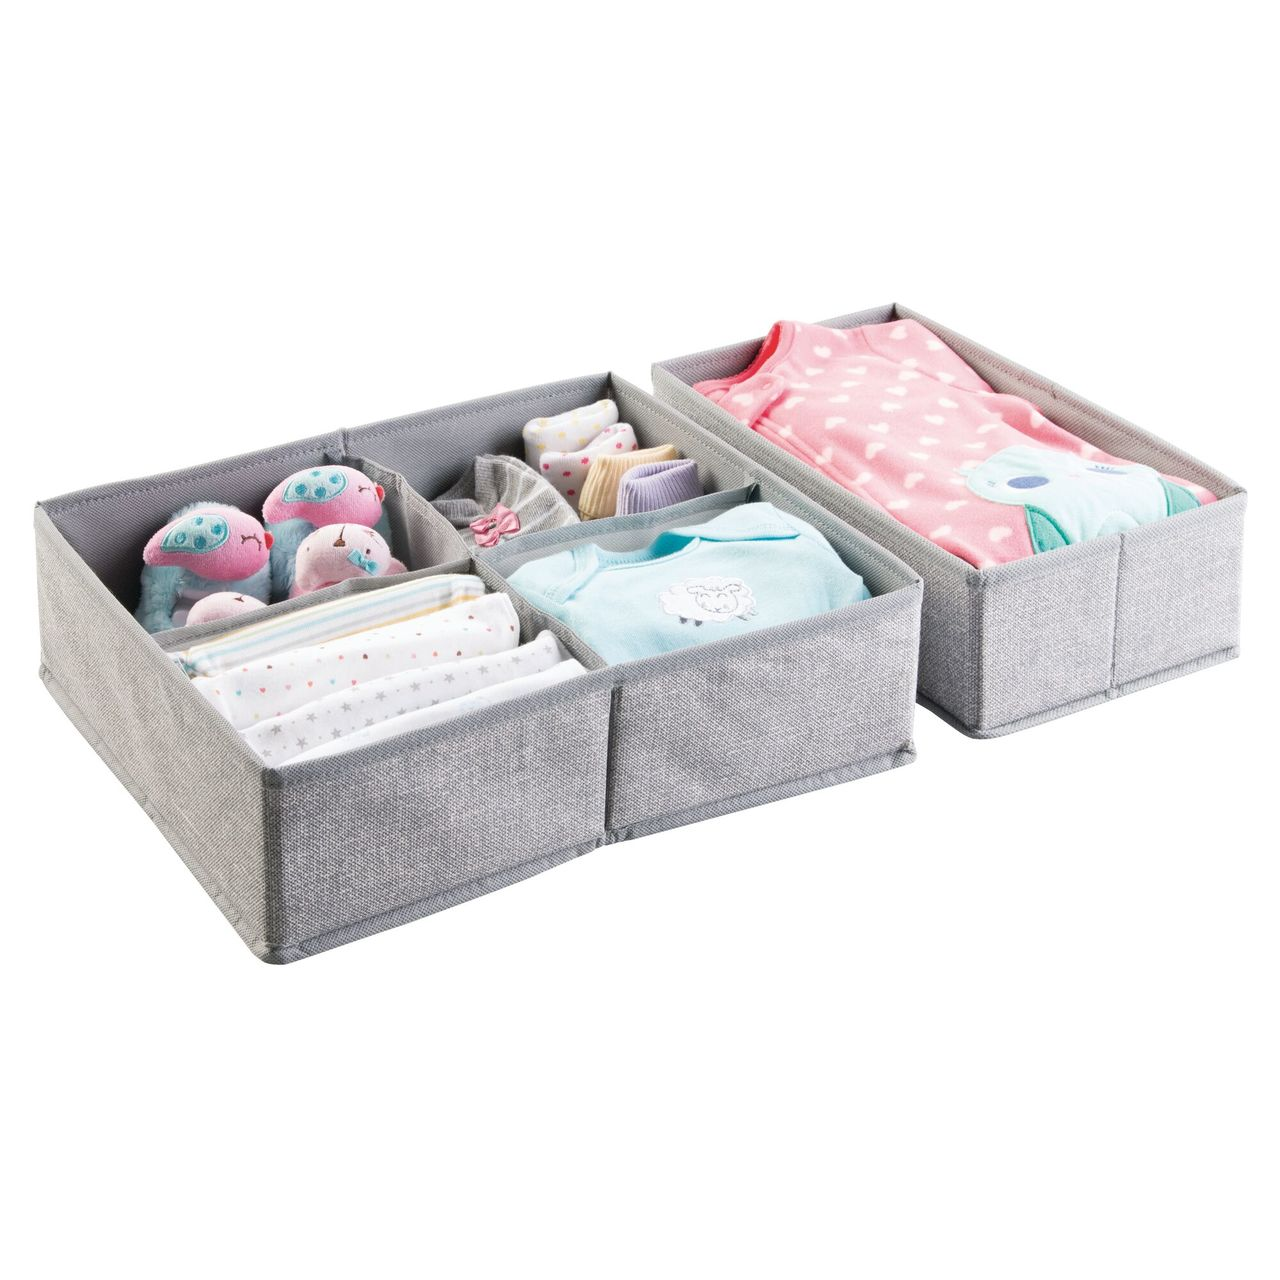 Kids Fabric Closet Dresser Drawer Storage Organizer in Natural/Cobalt Blue, by mDesign